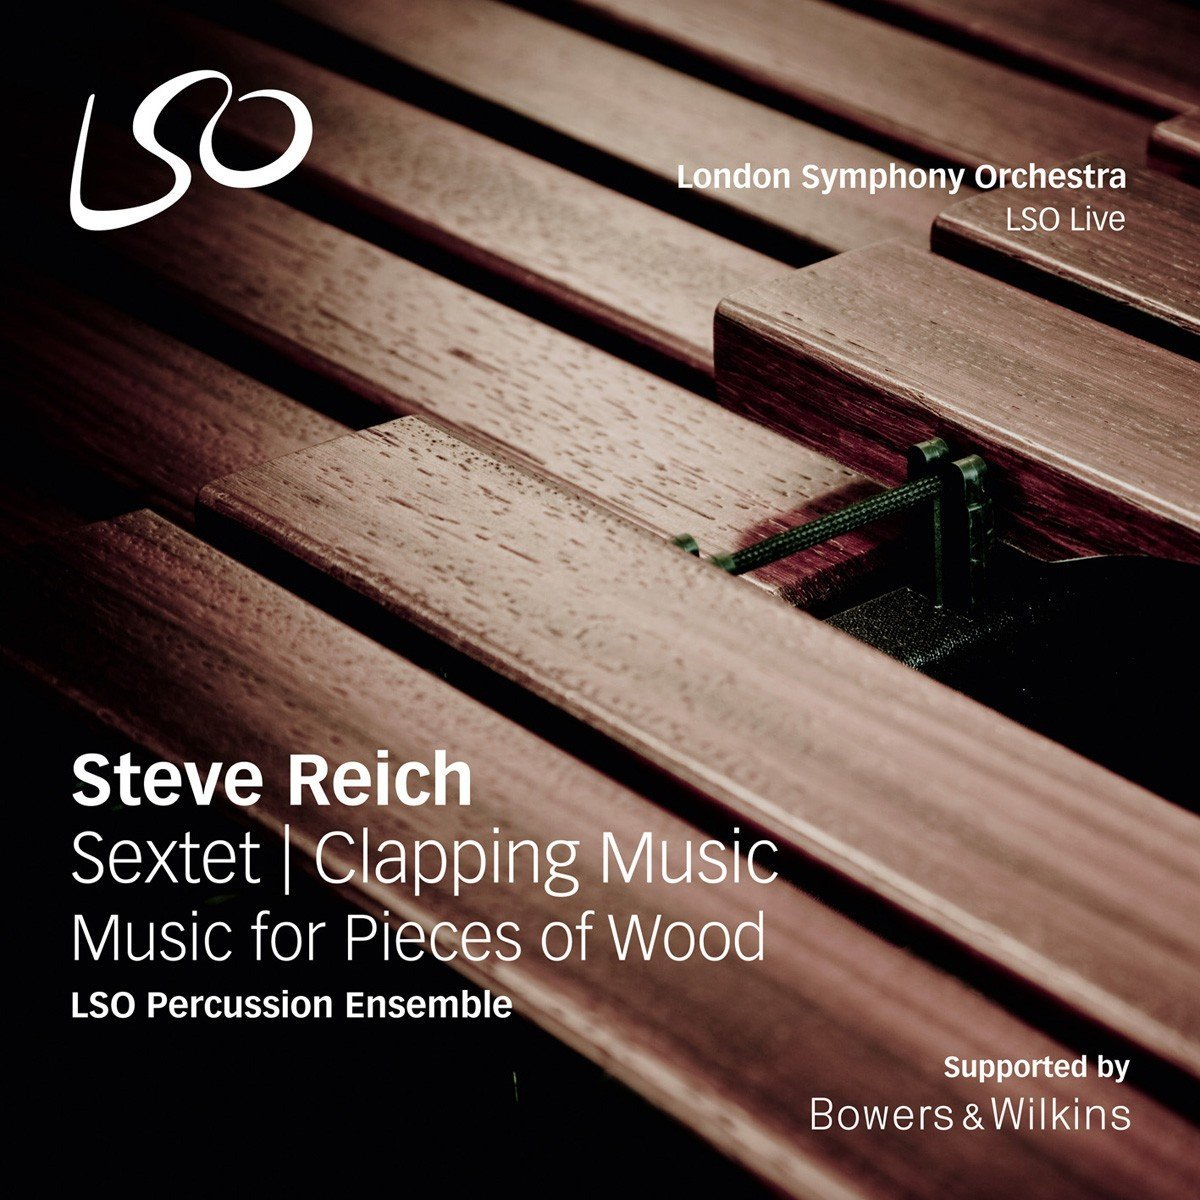 Cover of   LSO Percussion Ensemble / Steve Reich: Sextet; Clapping Music; Music for Pieces of Wood  .